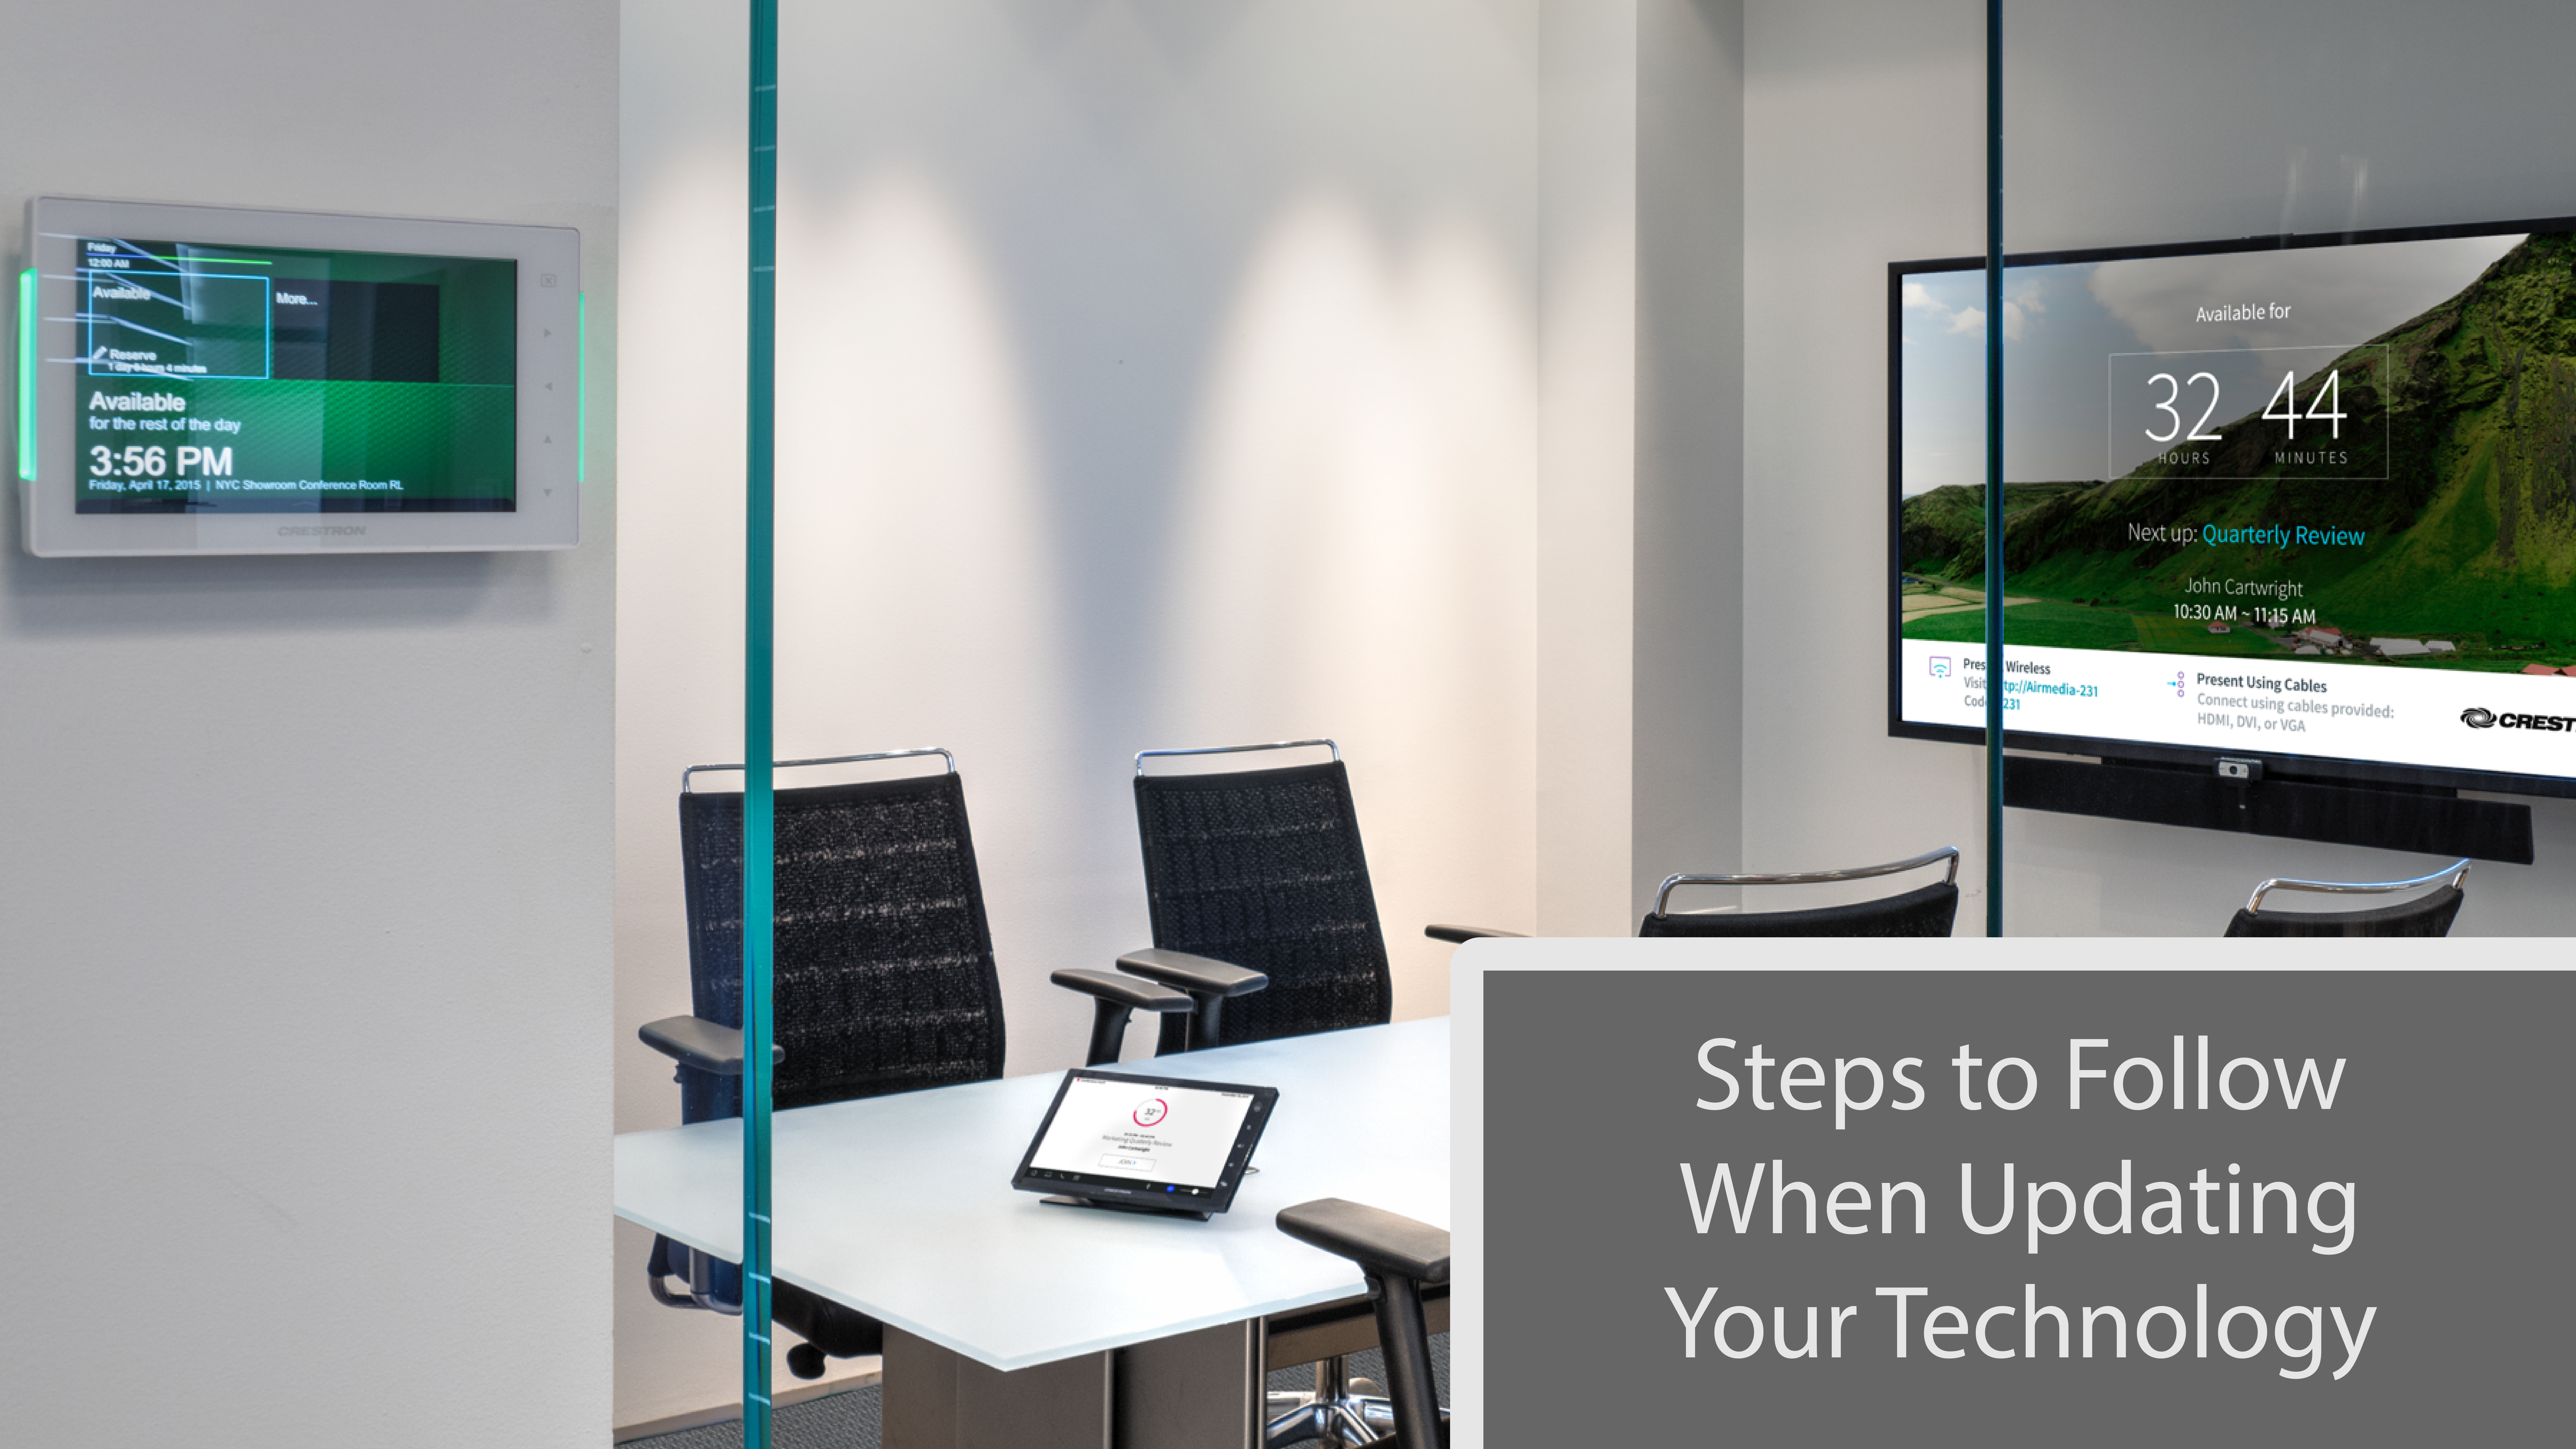 Steps to Updating Your Technology